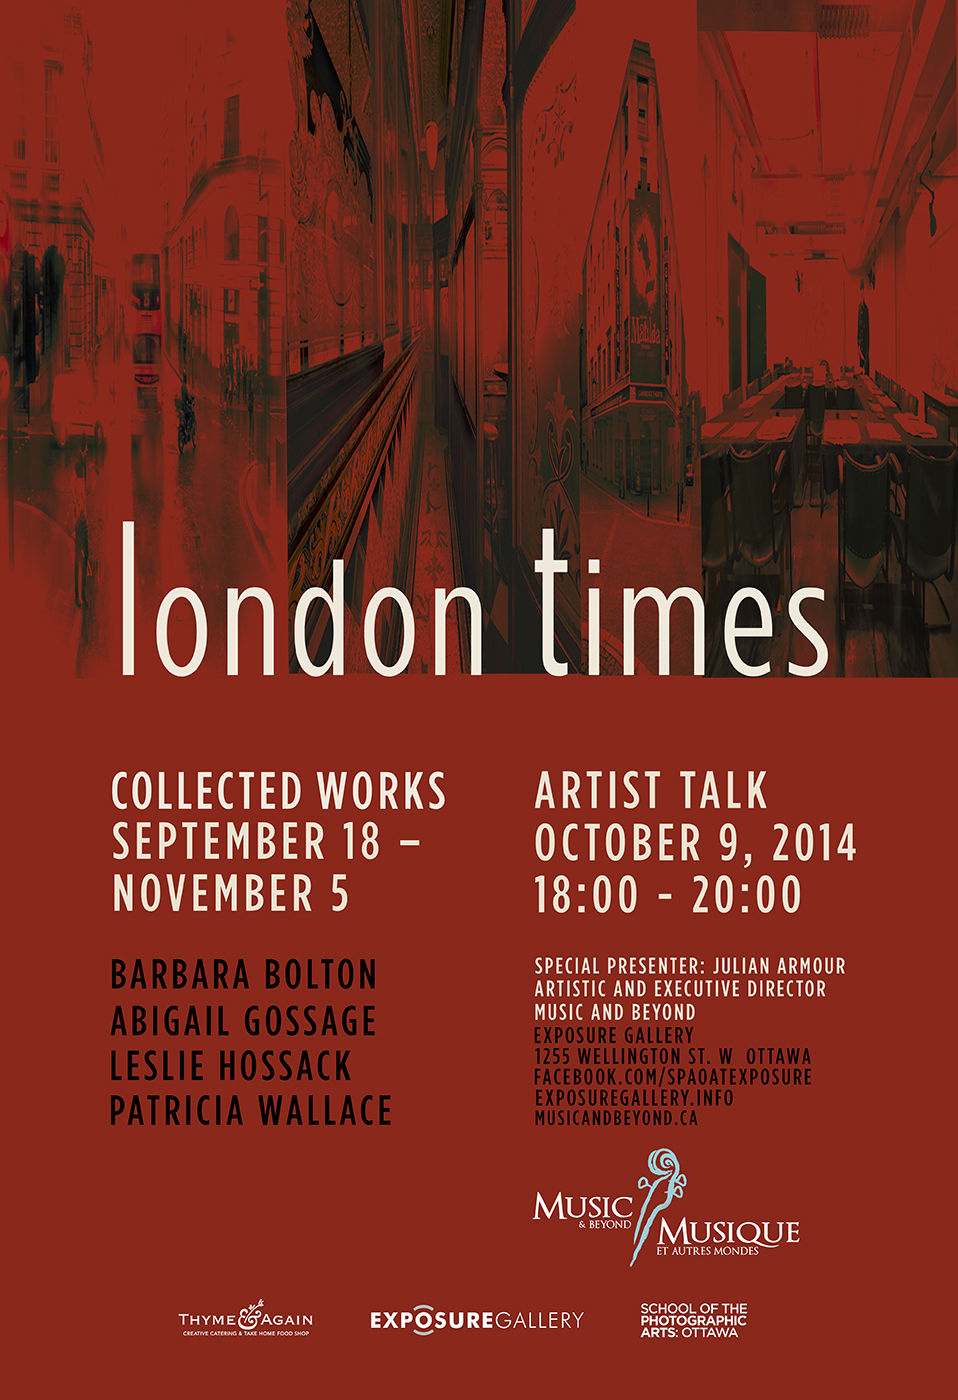 LONDON TIMES Artist Talk with Special Presenter Julian Armour of Music and Beyond